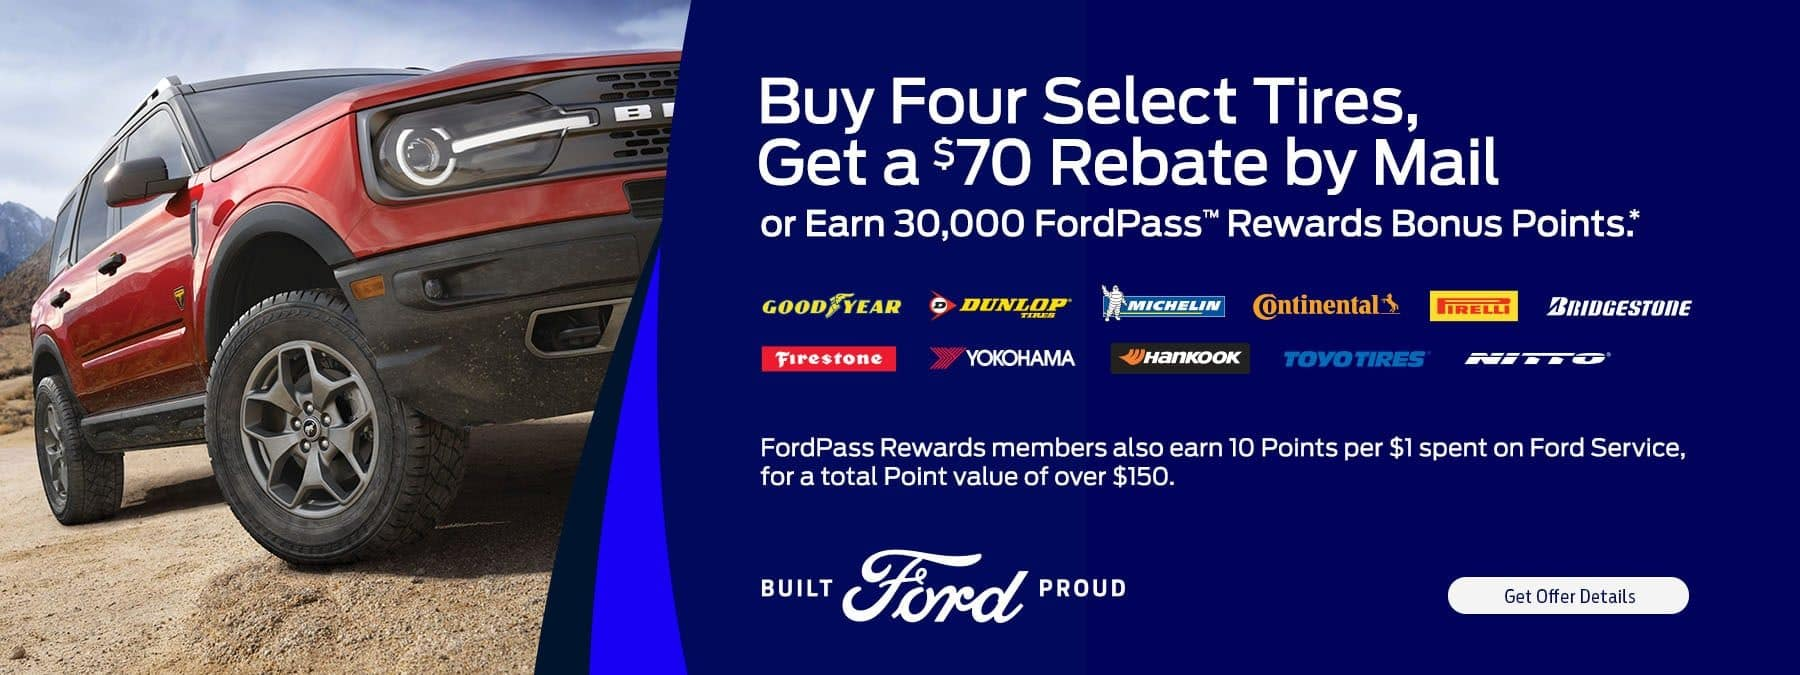 Tire Rebate special offer